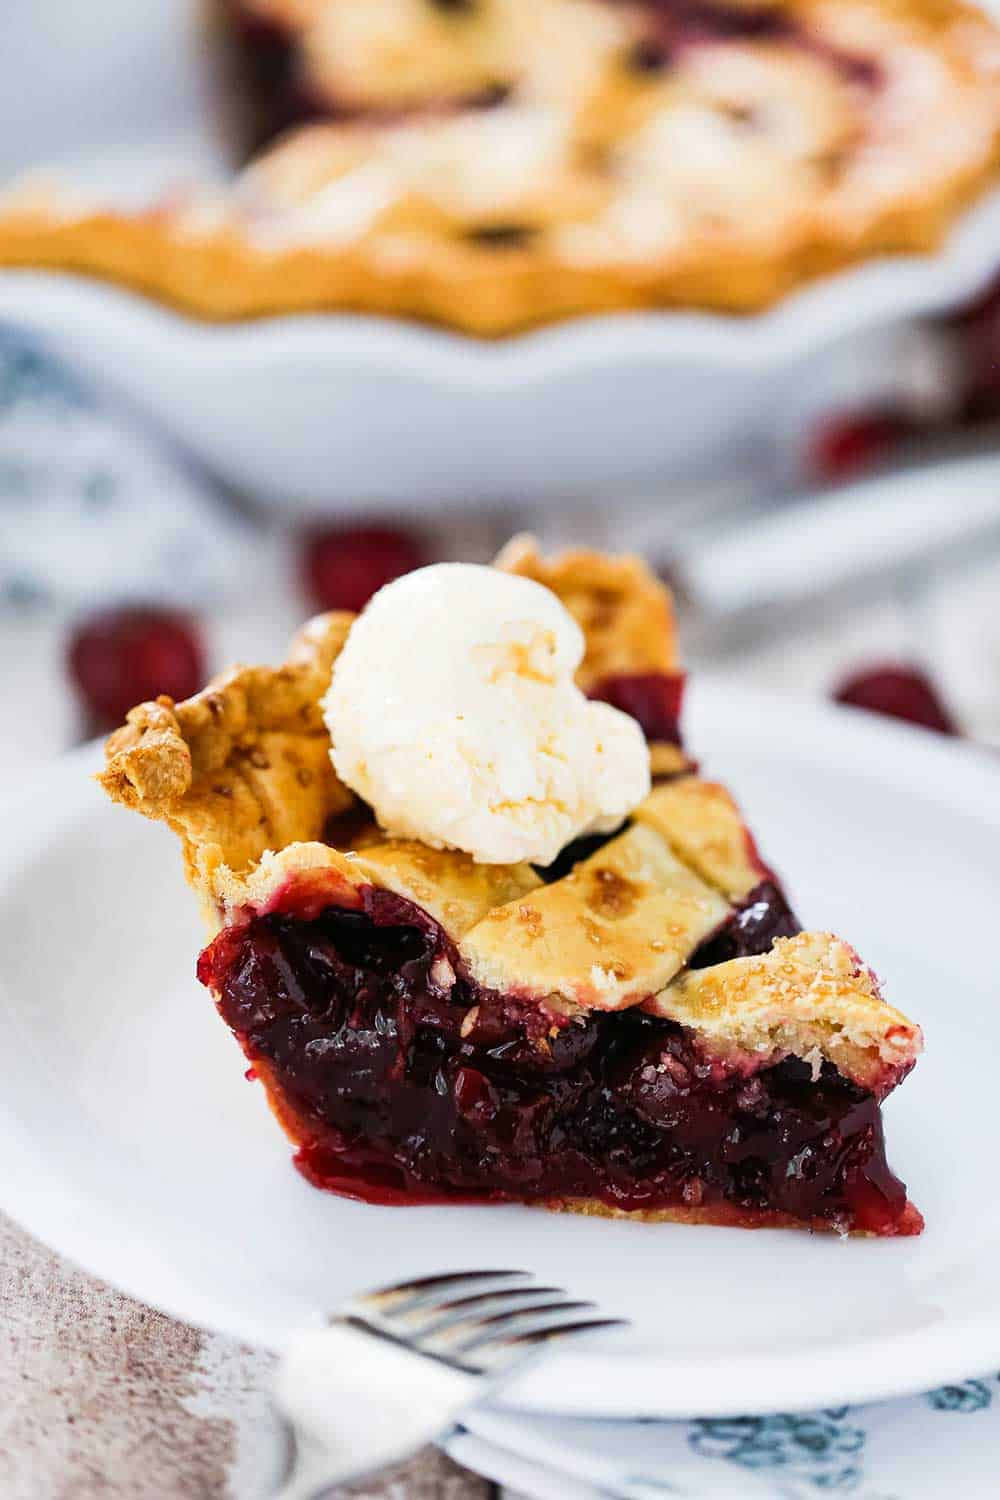 A single slice of cherry pie on a white dessert plate with a scoop of vanilla ice cream on top.